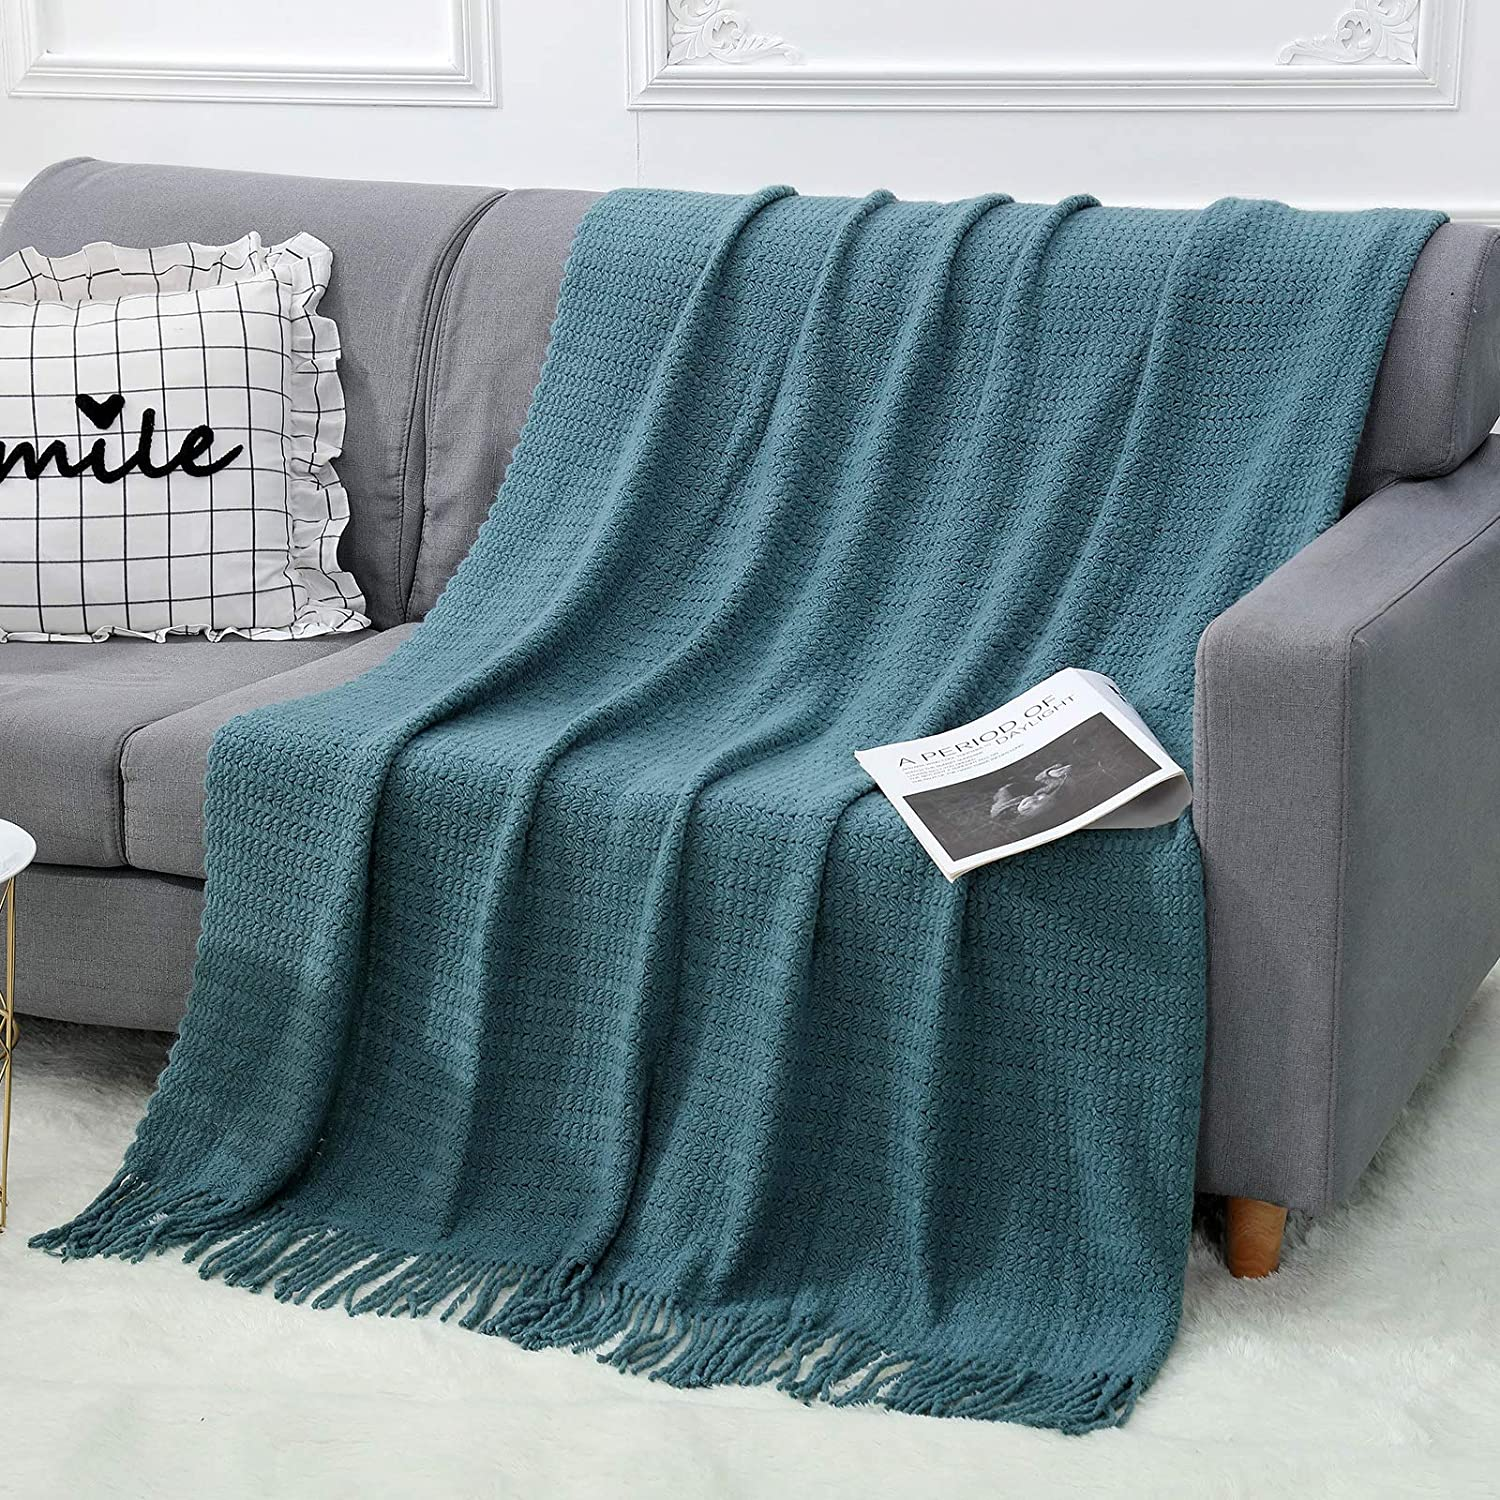 """WGCC Knit Throw Blanket for Couch, 50×60"""" 100% Acrylic Super Soft Bed Throw Blanket with Tassels, 1.4lb Warm Cozy Fluffy Knitted Woven Blanket for Couch Bed Sofa Home Travel - All Seasons (Teal)"""